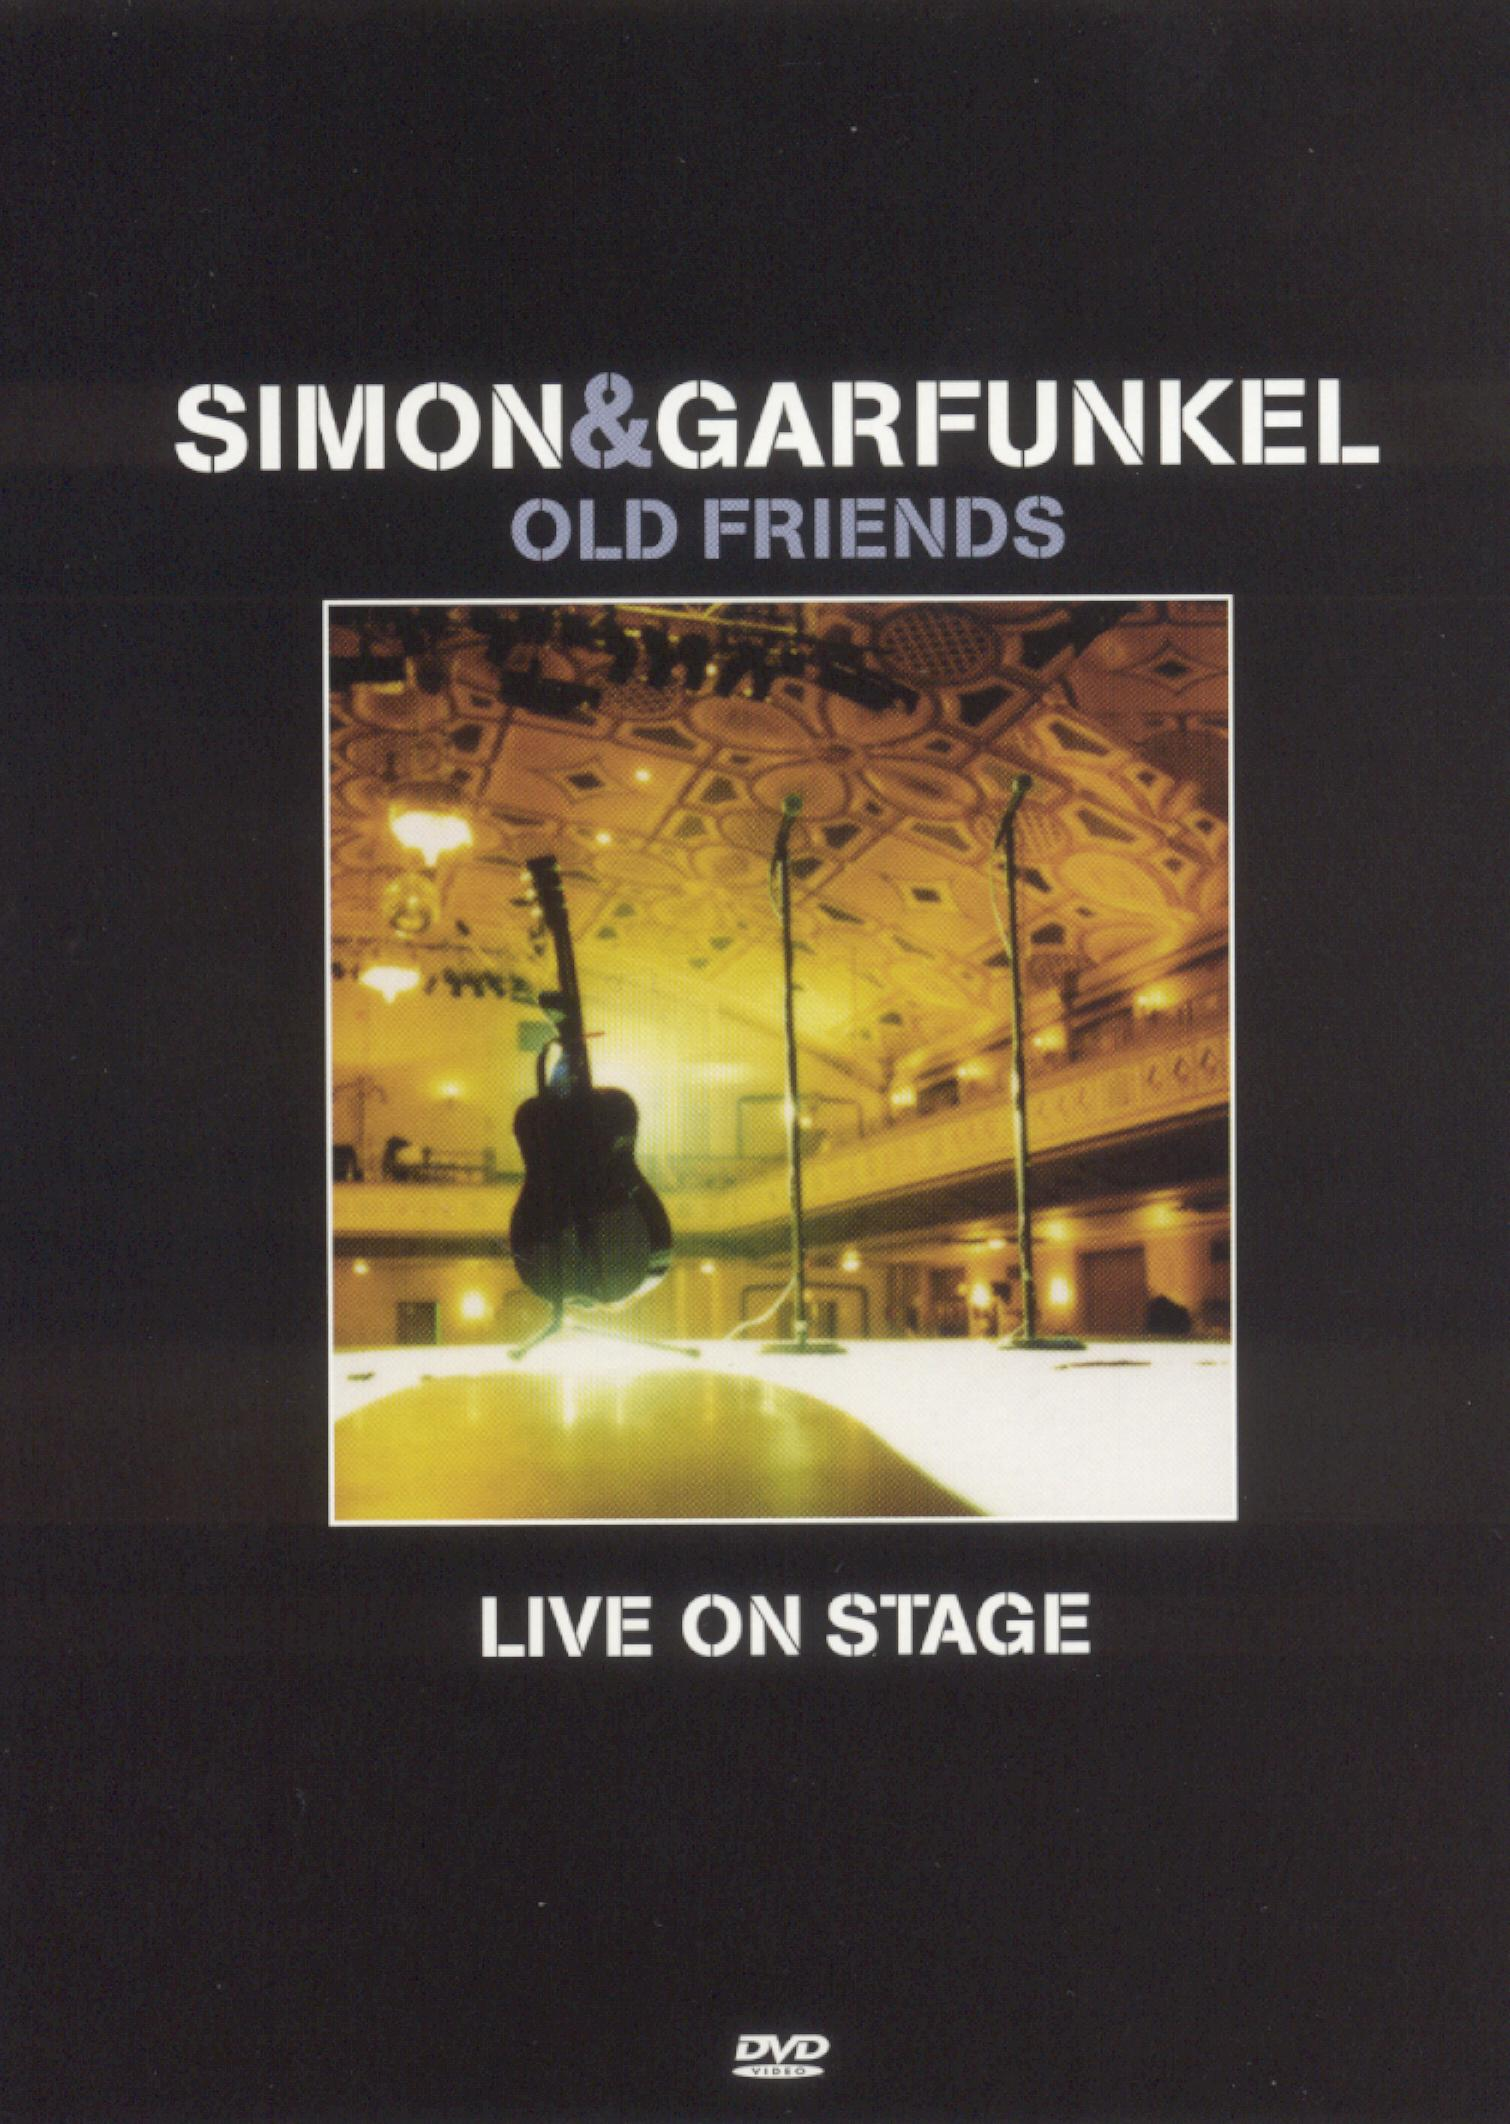 Simon and Garfunkel: Old Friends - Live on Stage